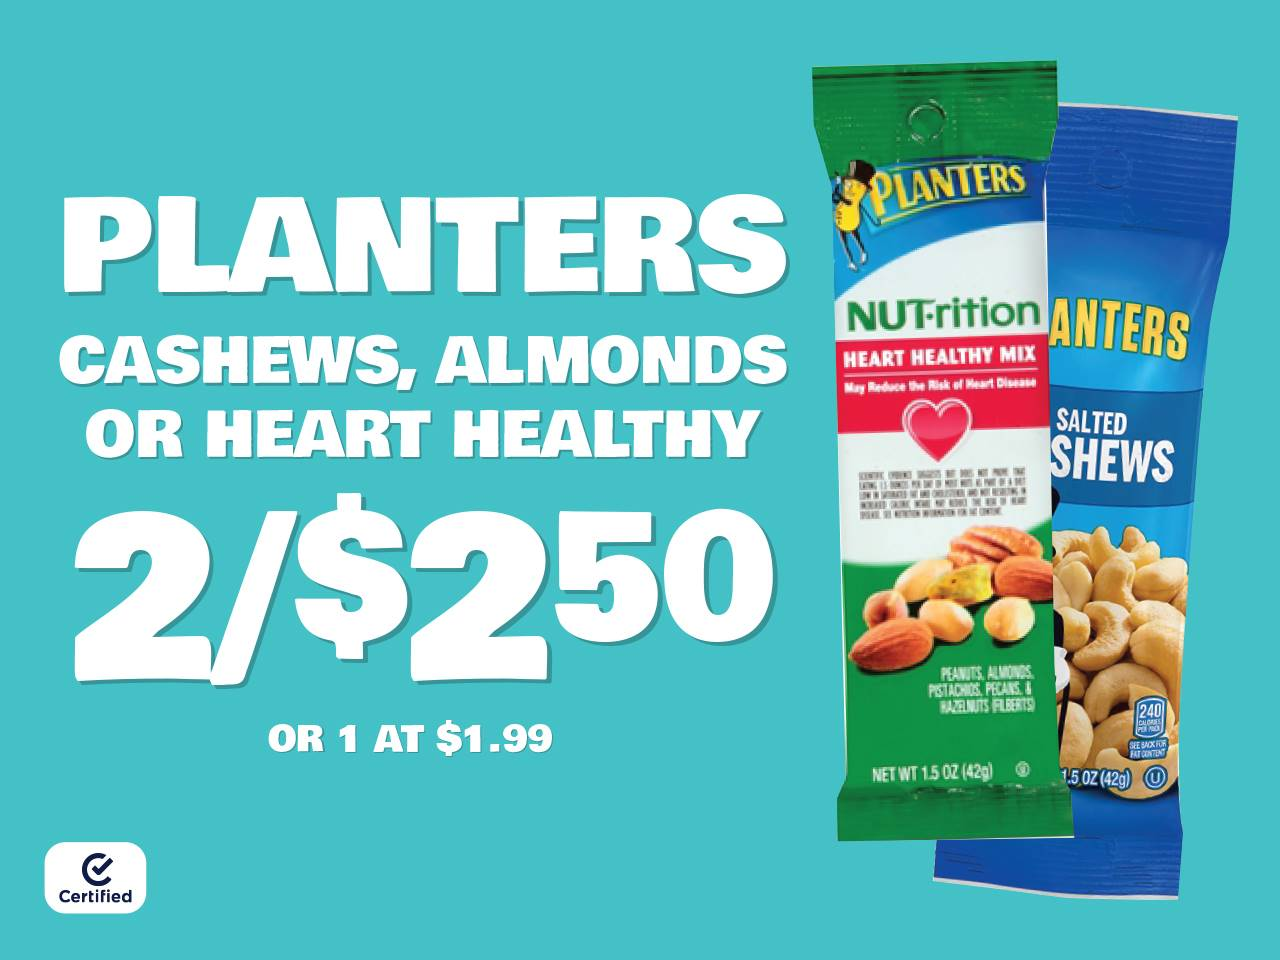 Planters Cashews, Almonds, or Heart Healthy 2 for $2.50 or 1 at $1.99